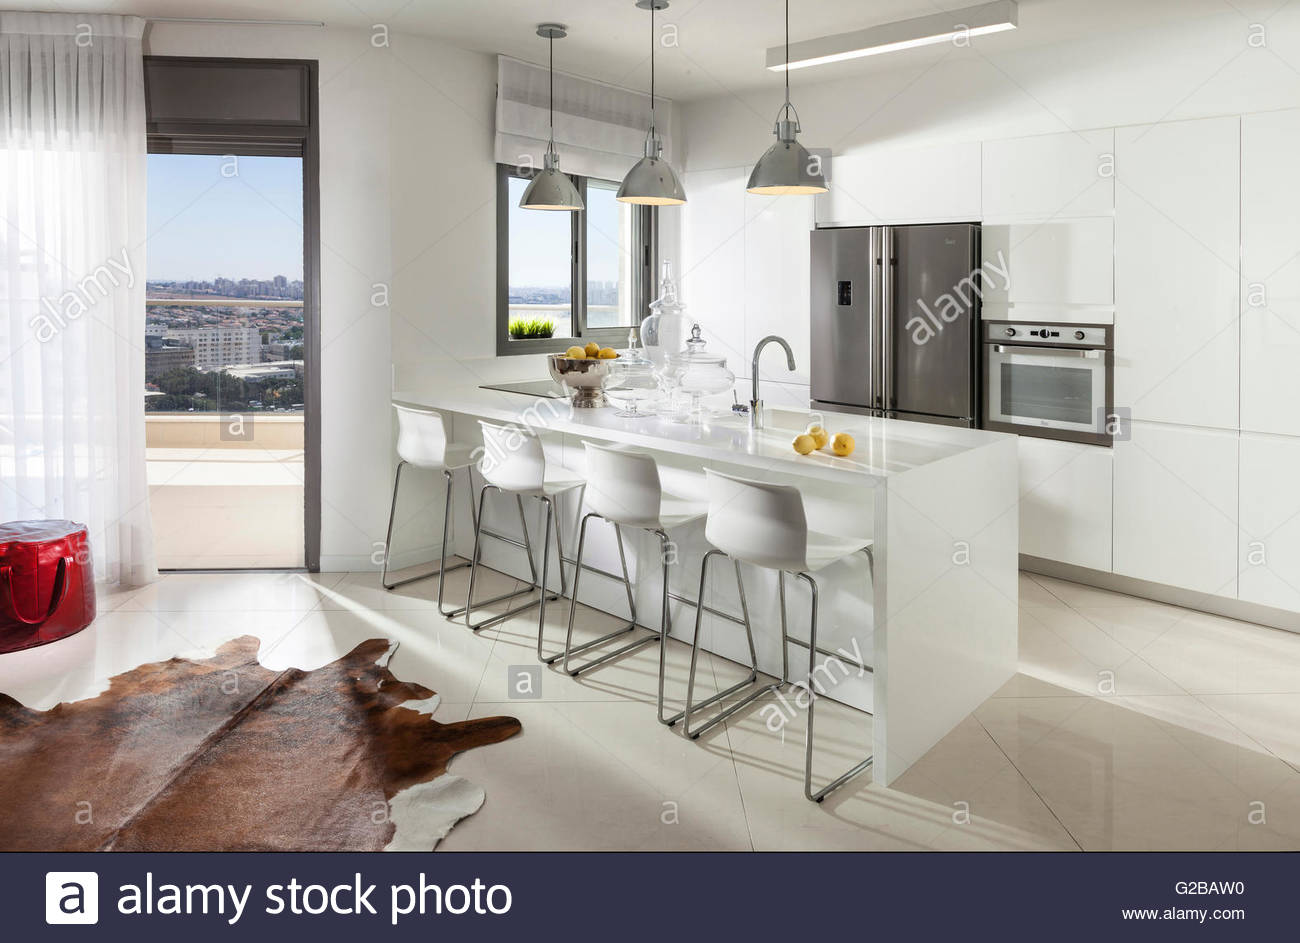 modern white kitchen island. Apartment For Reuveni Home Styling \u0026 Design. View Of A Modern White Kitchen With Stainless Steel Appliances. Island Stools. N